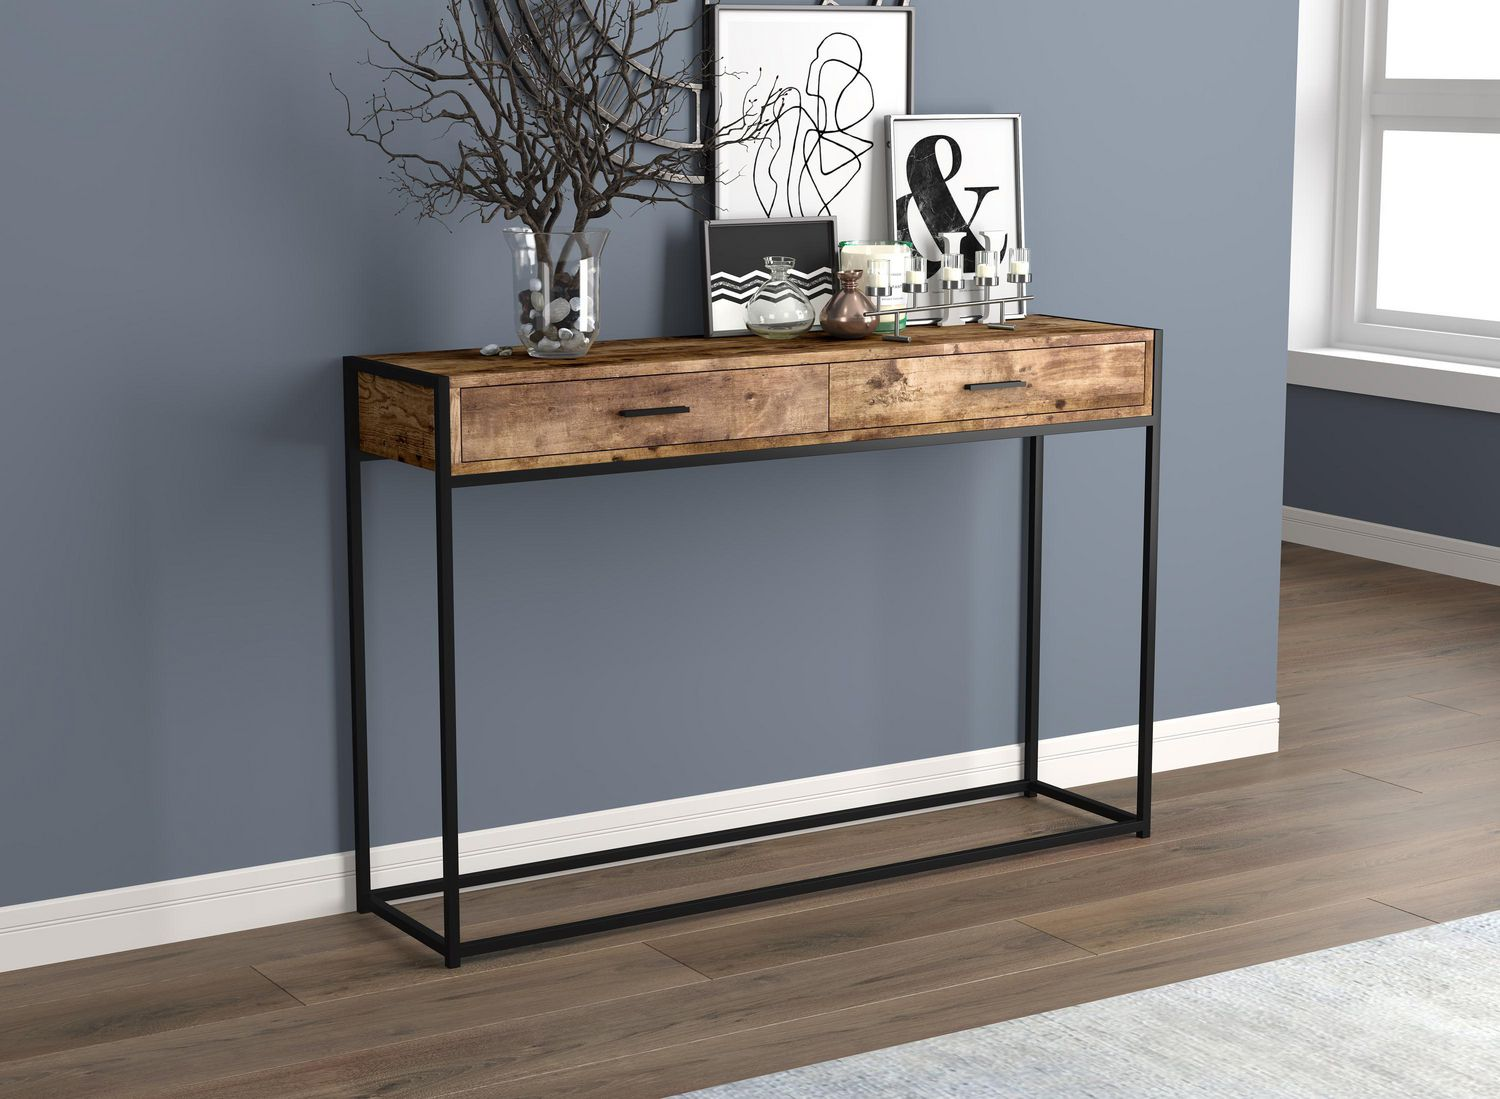 Picture of: Safdie Co Console Table 48l Brown Reclaimed Wood 2 Drawers Black Metal Walmart Canada